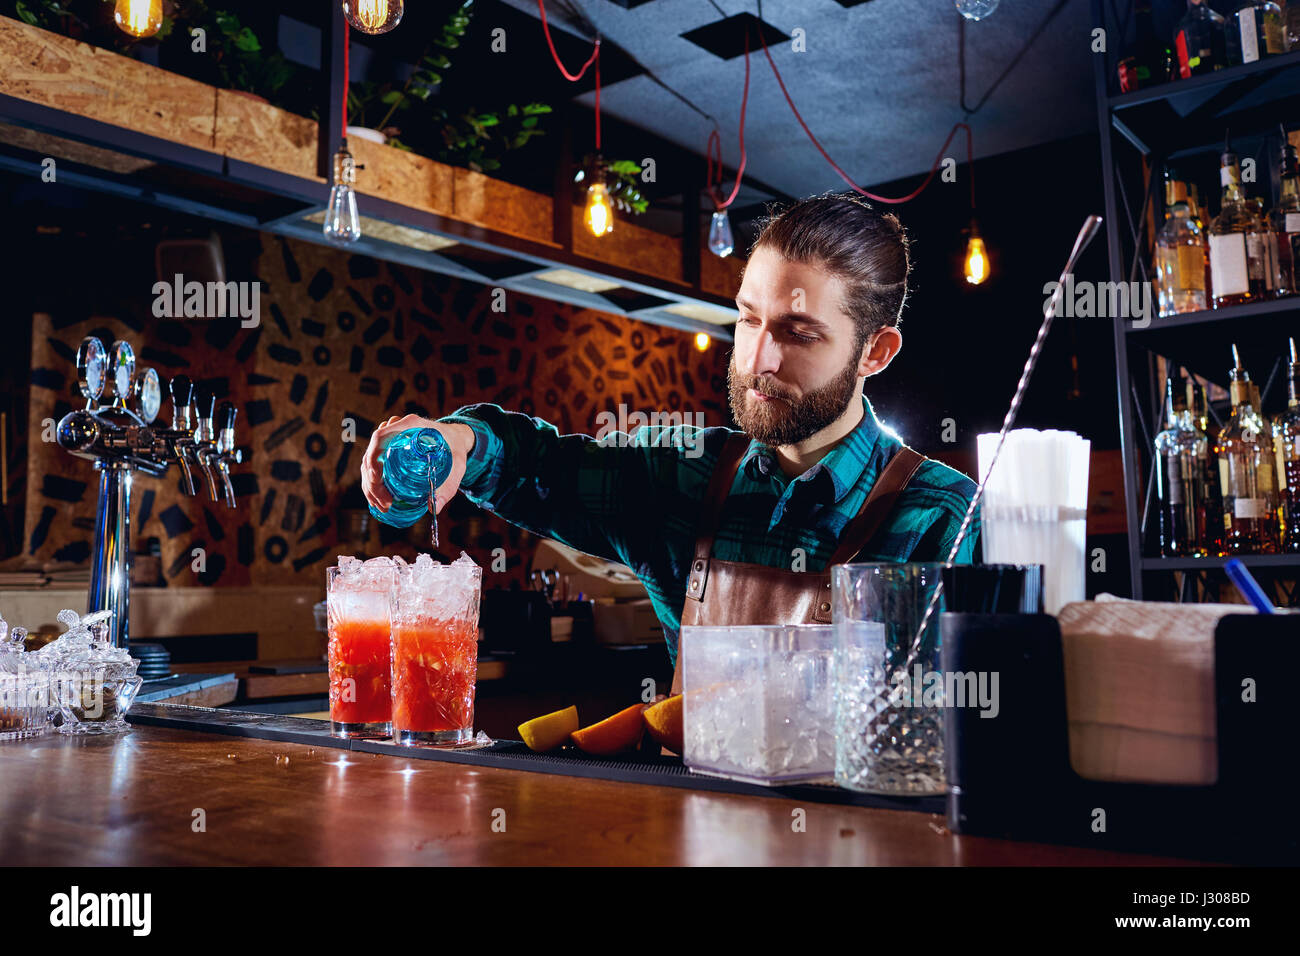 Le barman avec un cocktail au bar fait la barbe Photo Stock